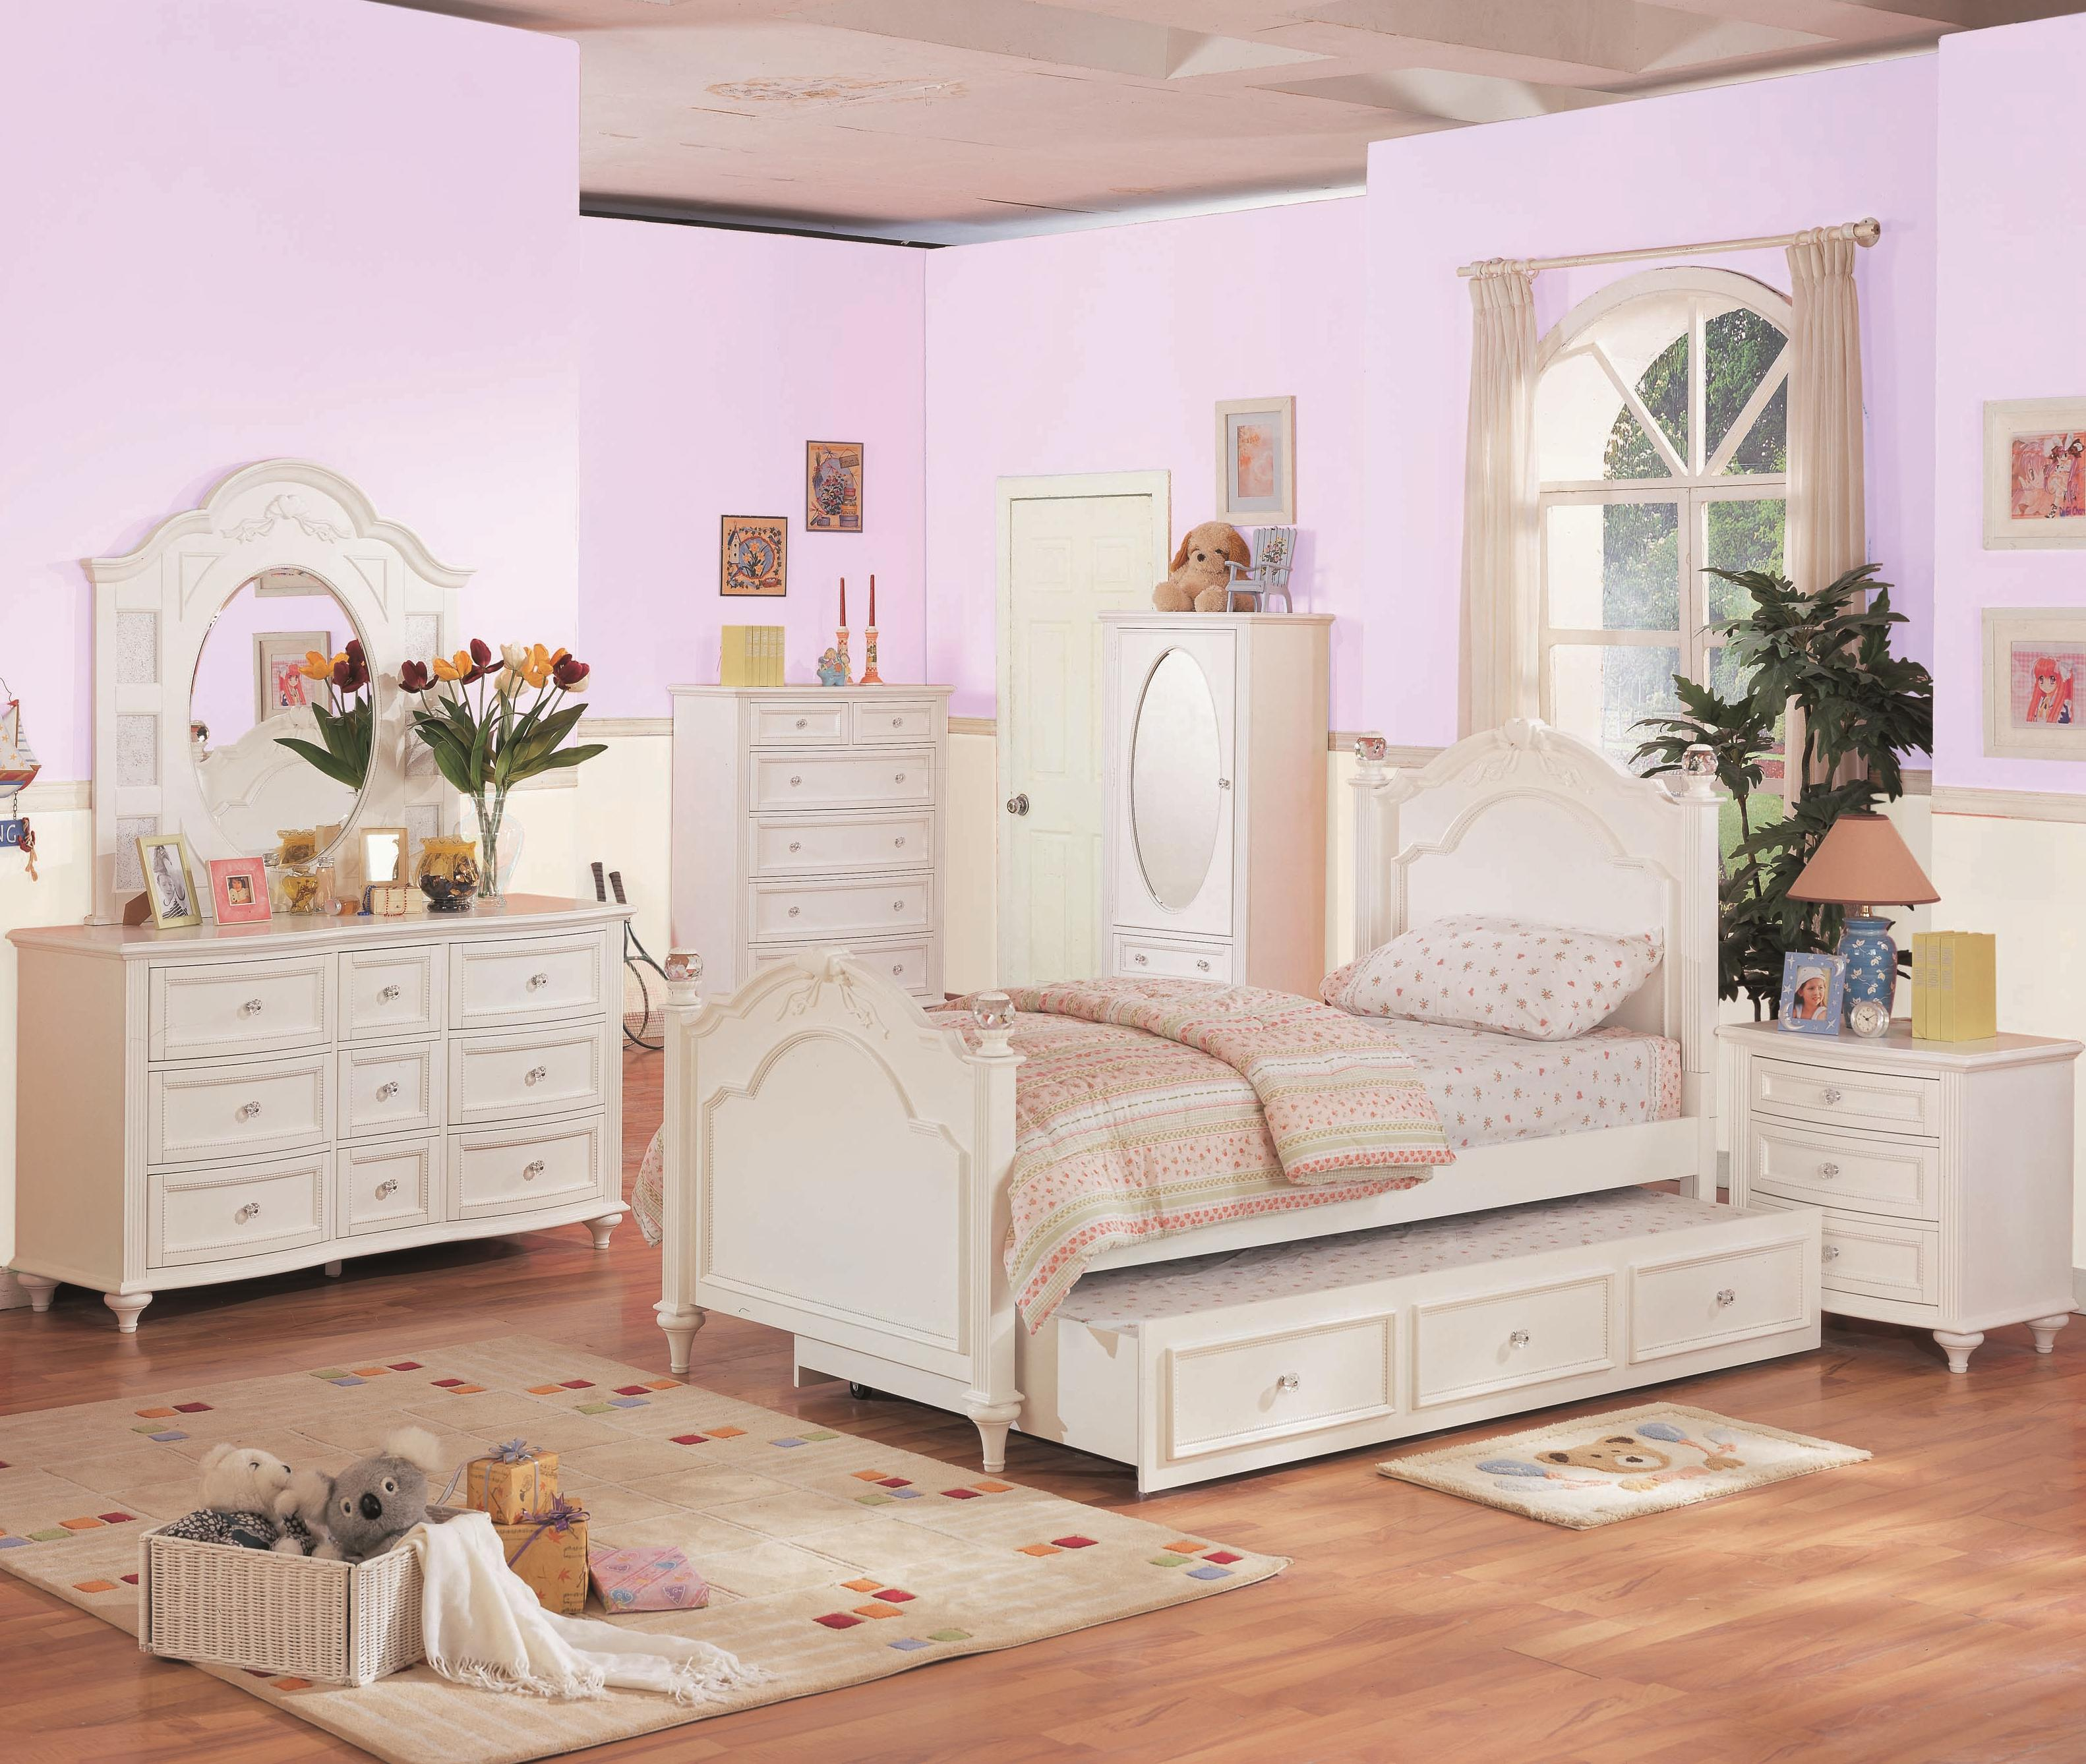 Holland House Chantilly Drawer Dresser W/ Clear Knobs | Godby Home  Furnishings | Dresser Noblesville, Carmel, Avon, Indianapolis, Indiana